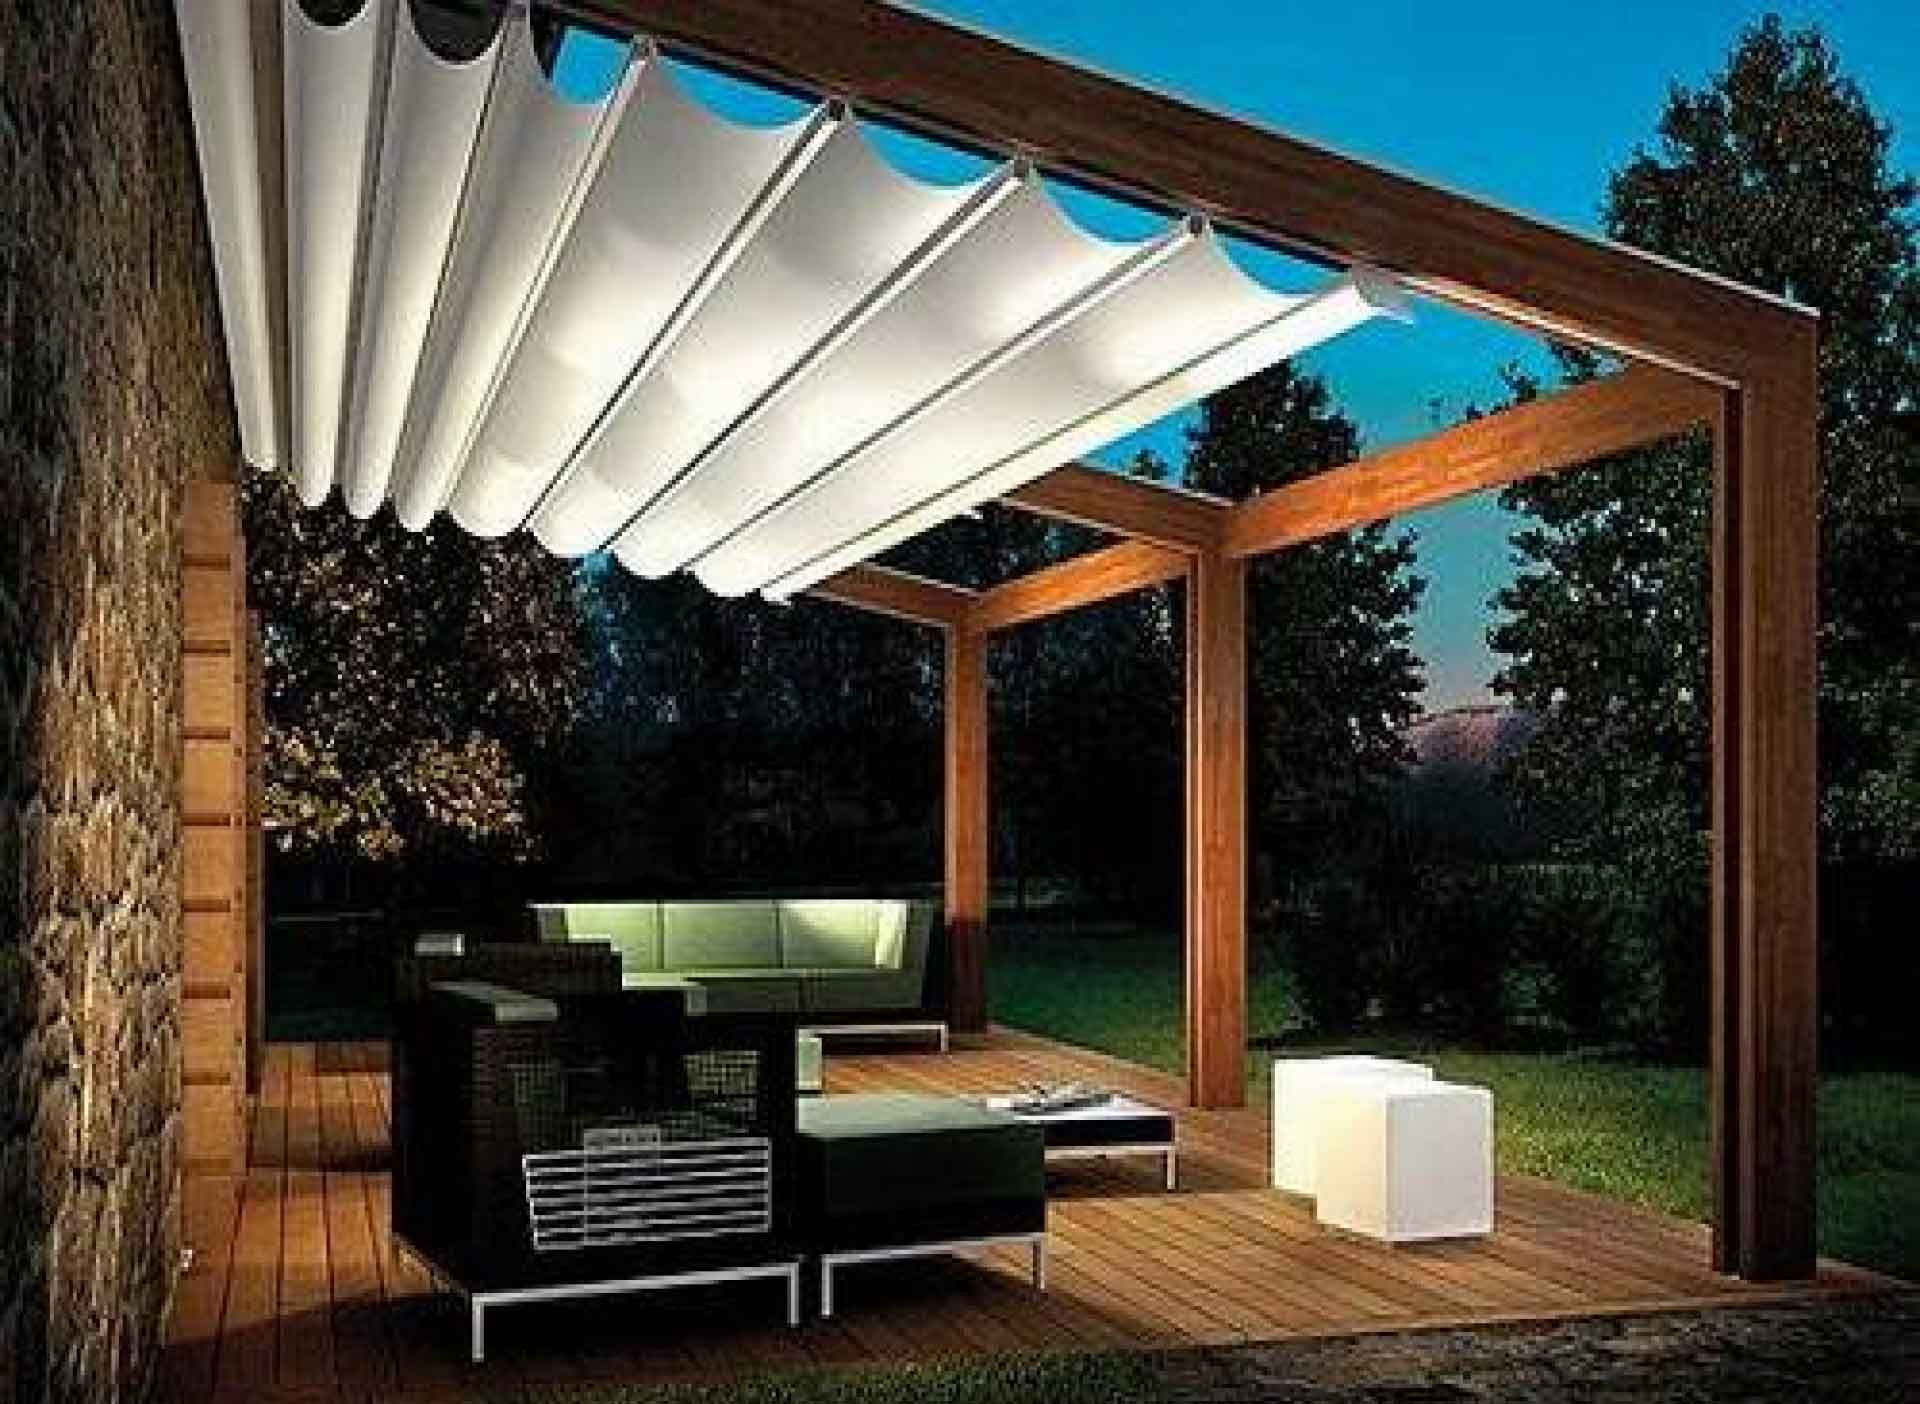 How To Attach A Patio Roof To An Existing House And 10 Fantastic Patio Roof Ideas With Images Backyard Pergola Pergola Pergola Patio